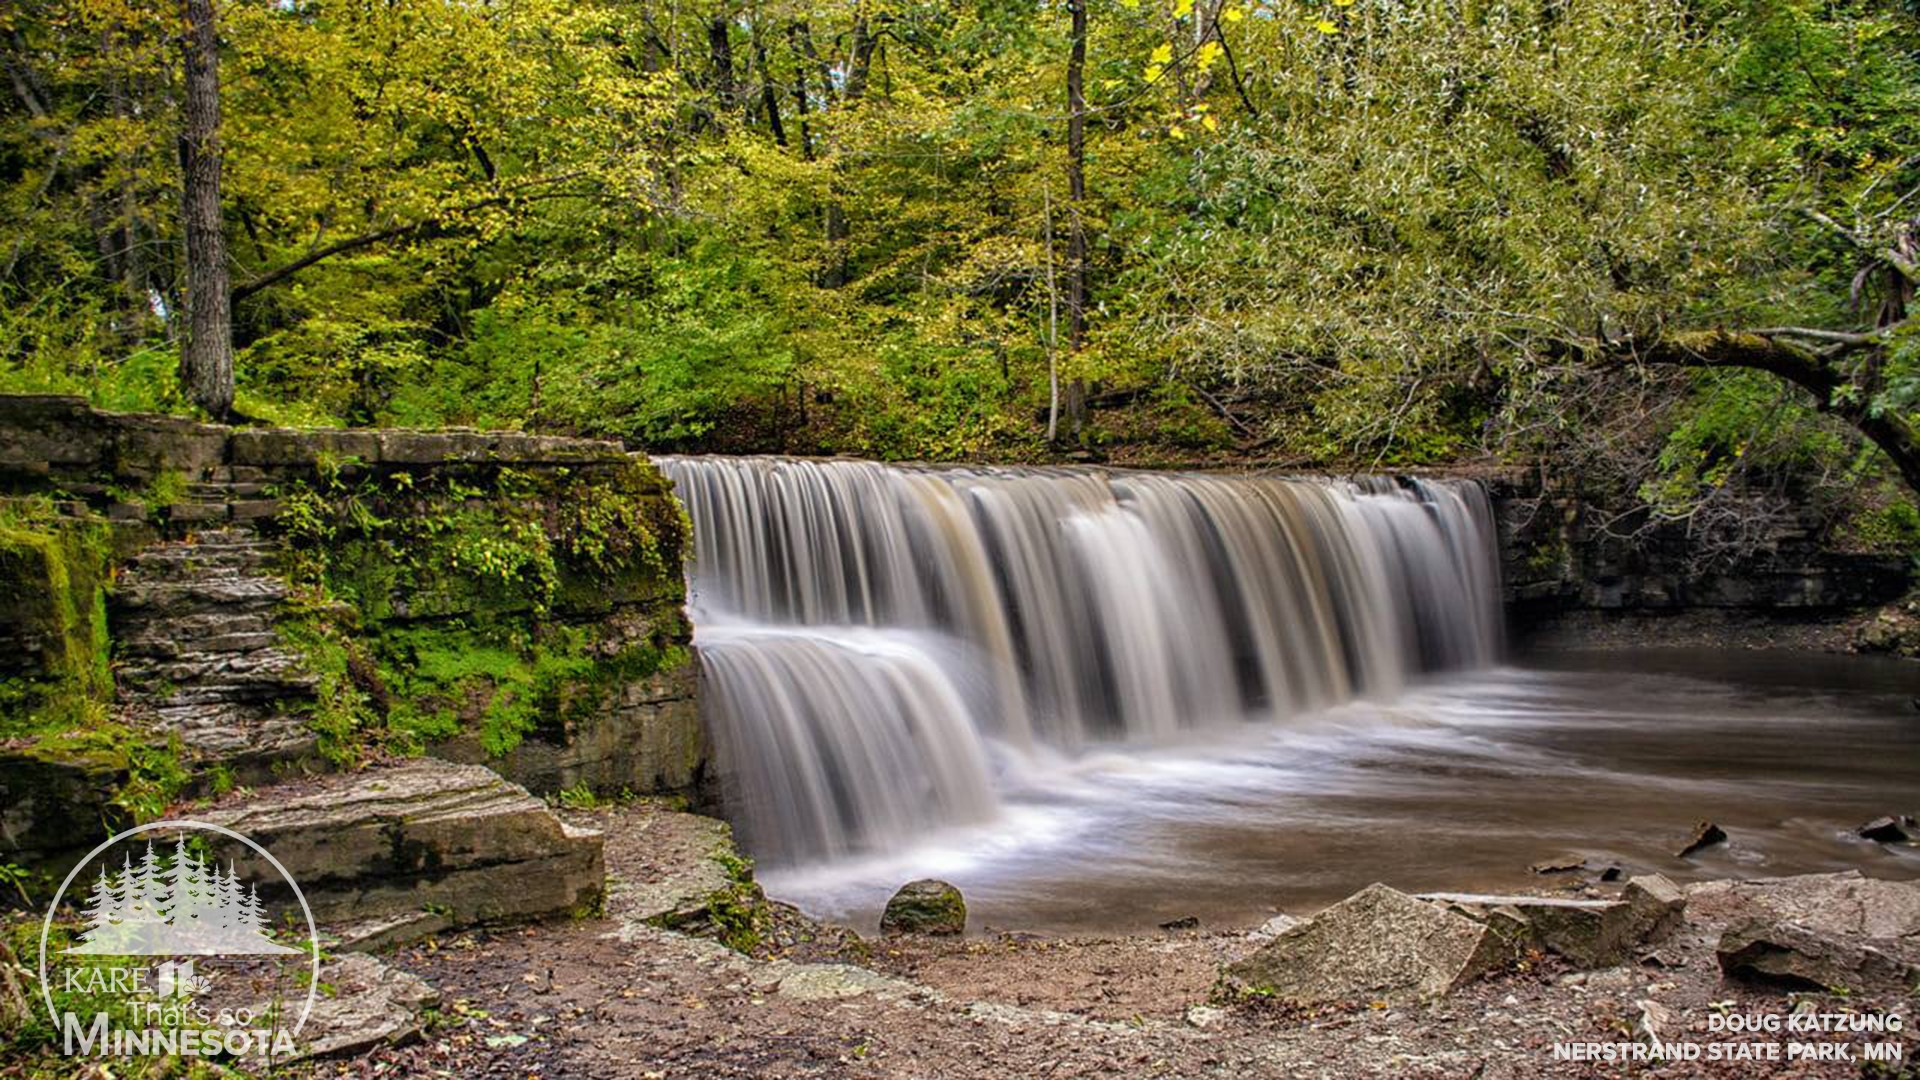 Update Your Zoom Background With These Beautiful Minnesota Photos Kare11 Com